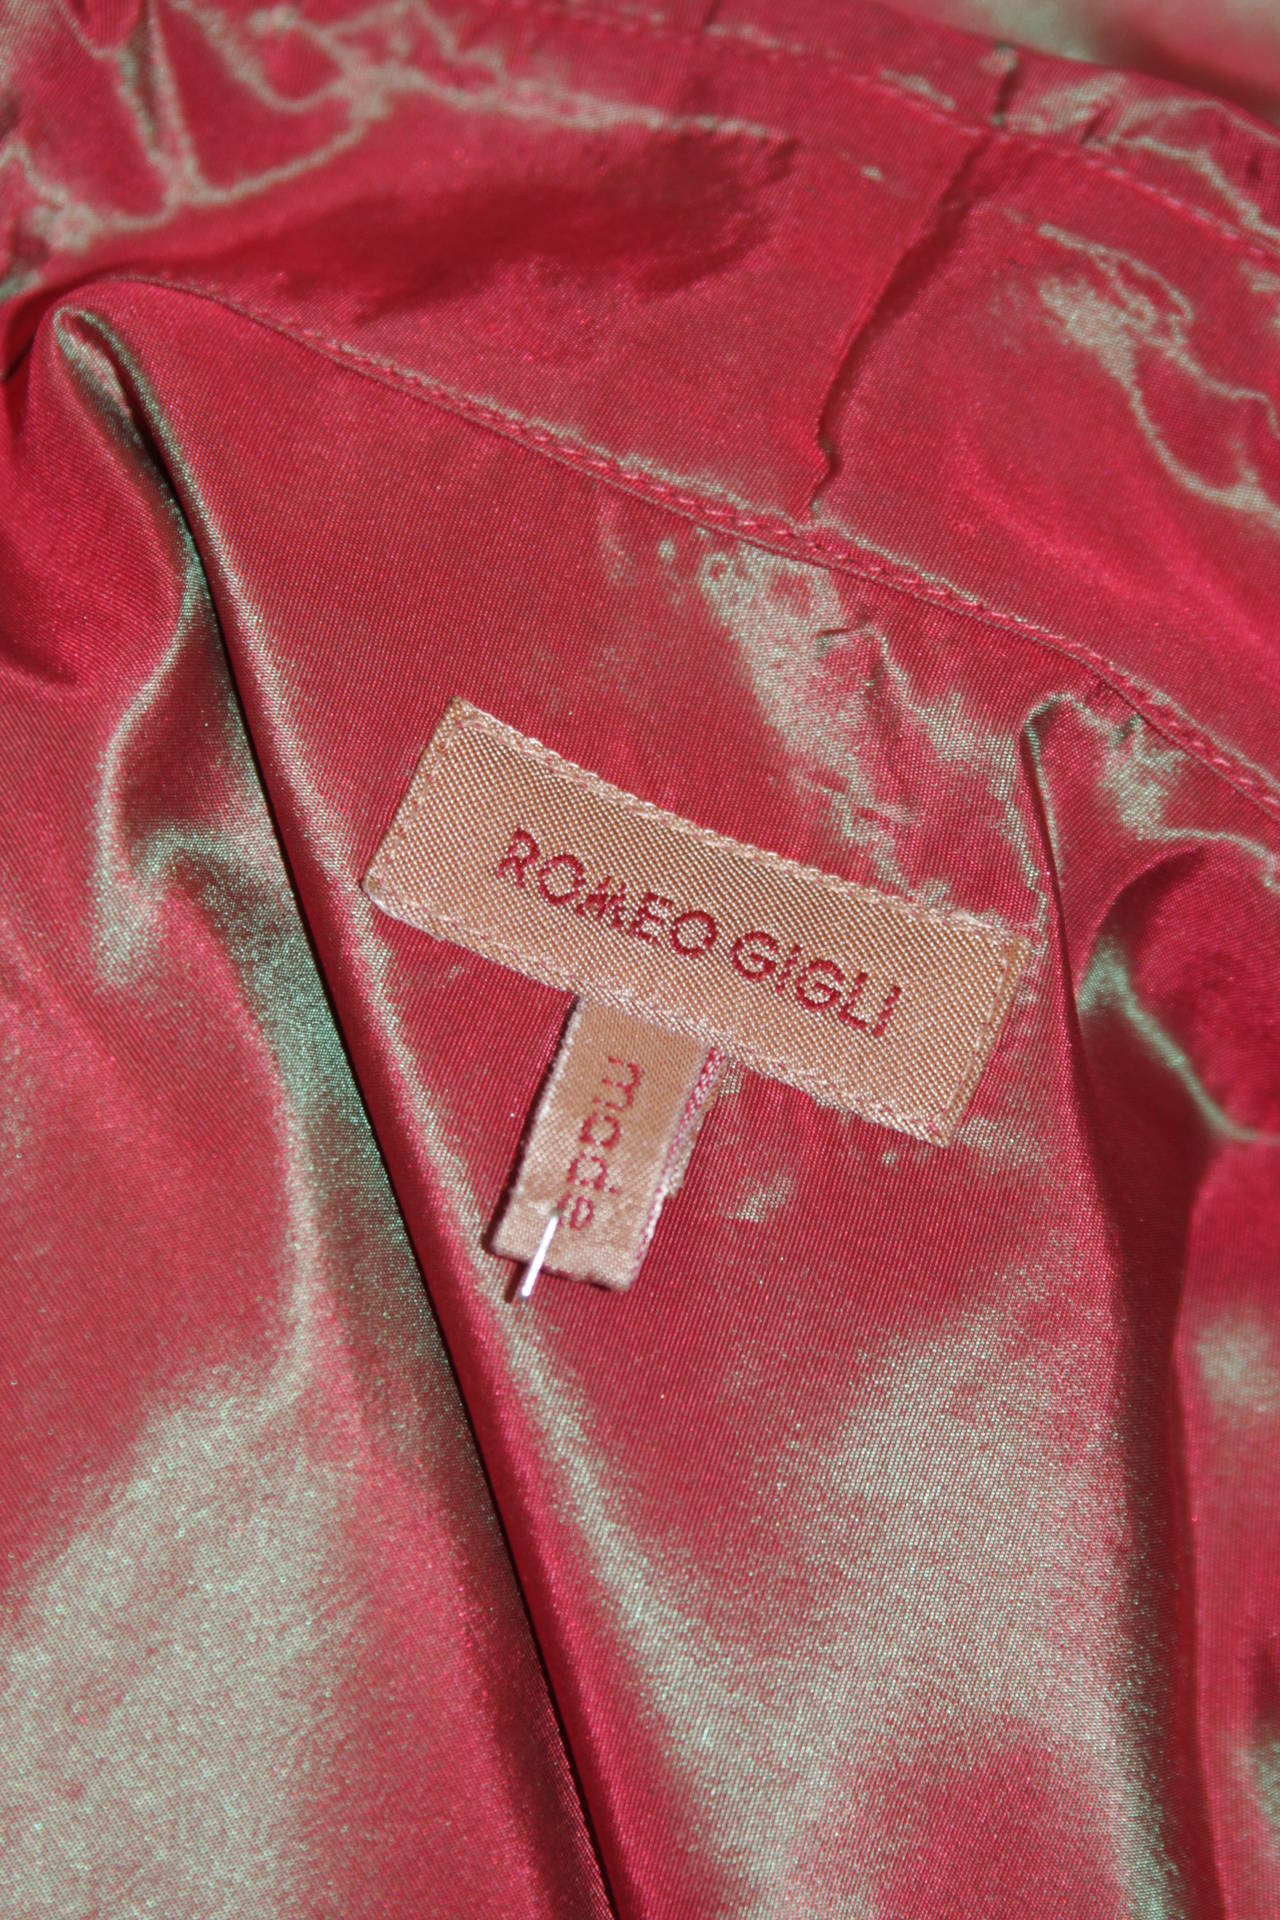 Romeo Gigli Red Iridescent Shirt Size 42 For Sale 2